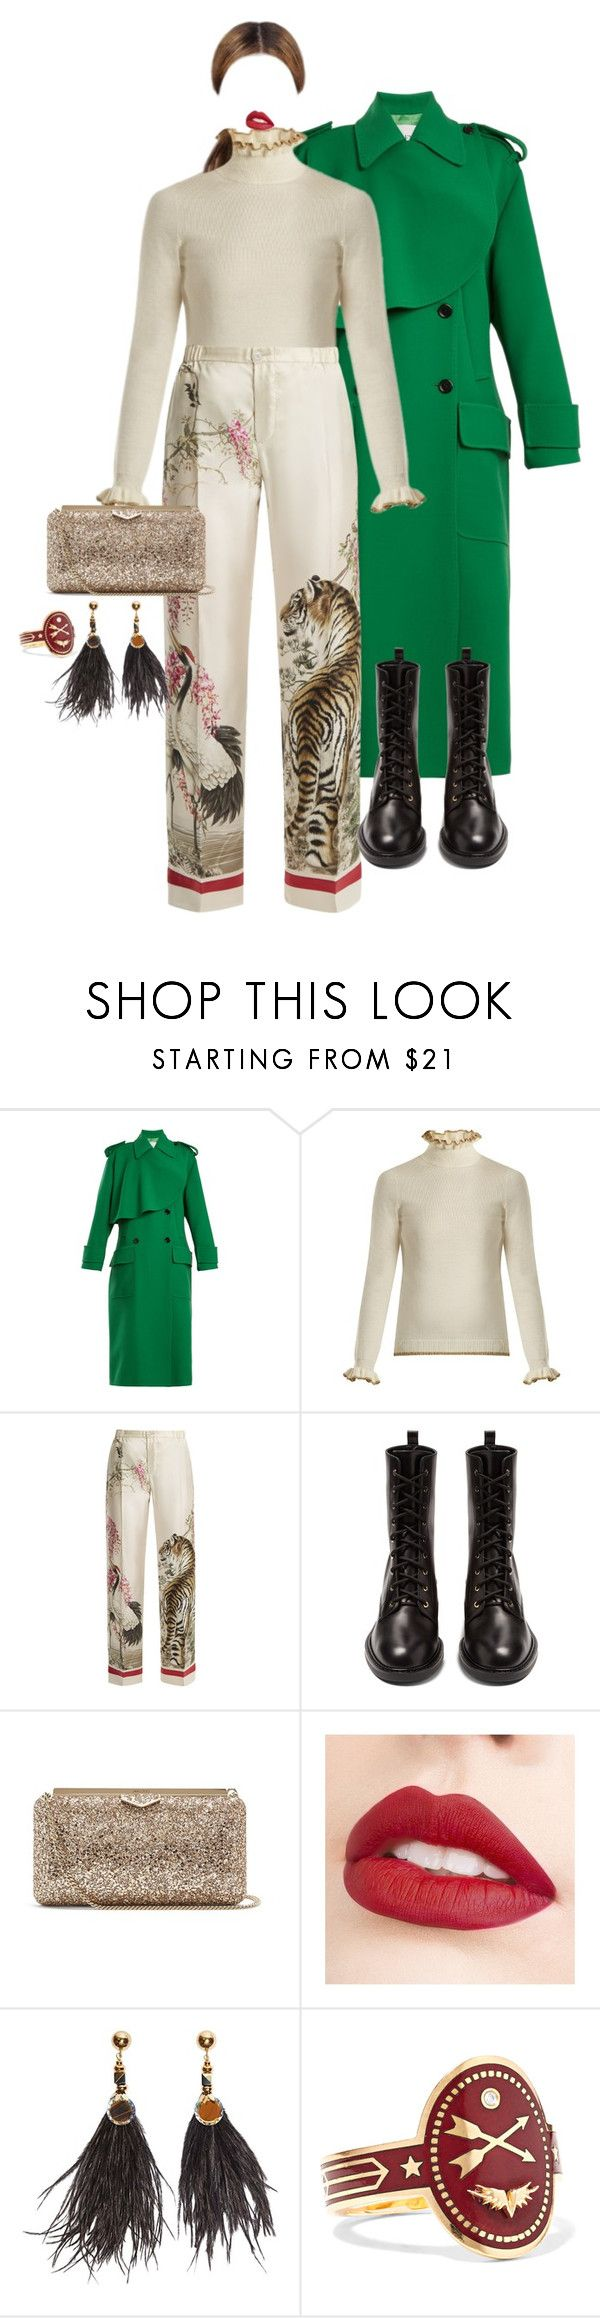 """""""Be together (Jungle)"""" by reesescup3000 ❤ liked on Polyvore featuring Valentino, Shrimps, F.R.S For Restless Sleepers, Nicholas Kirkwood, Jimmy Choo, Jouer, Nocturne and Foundrae"""